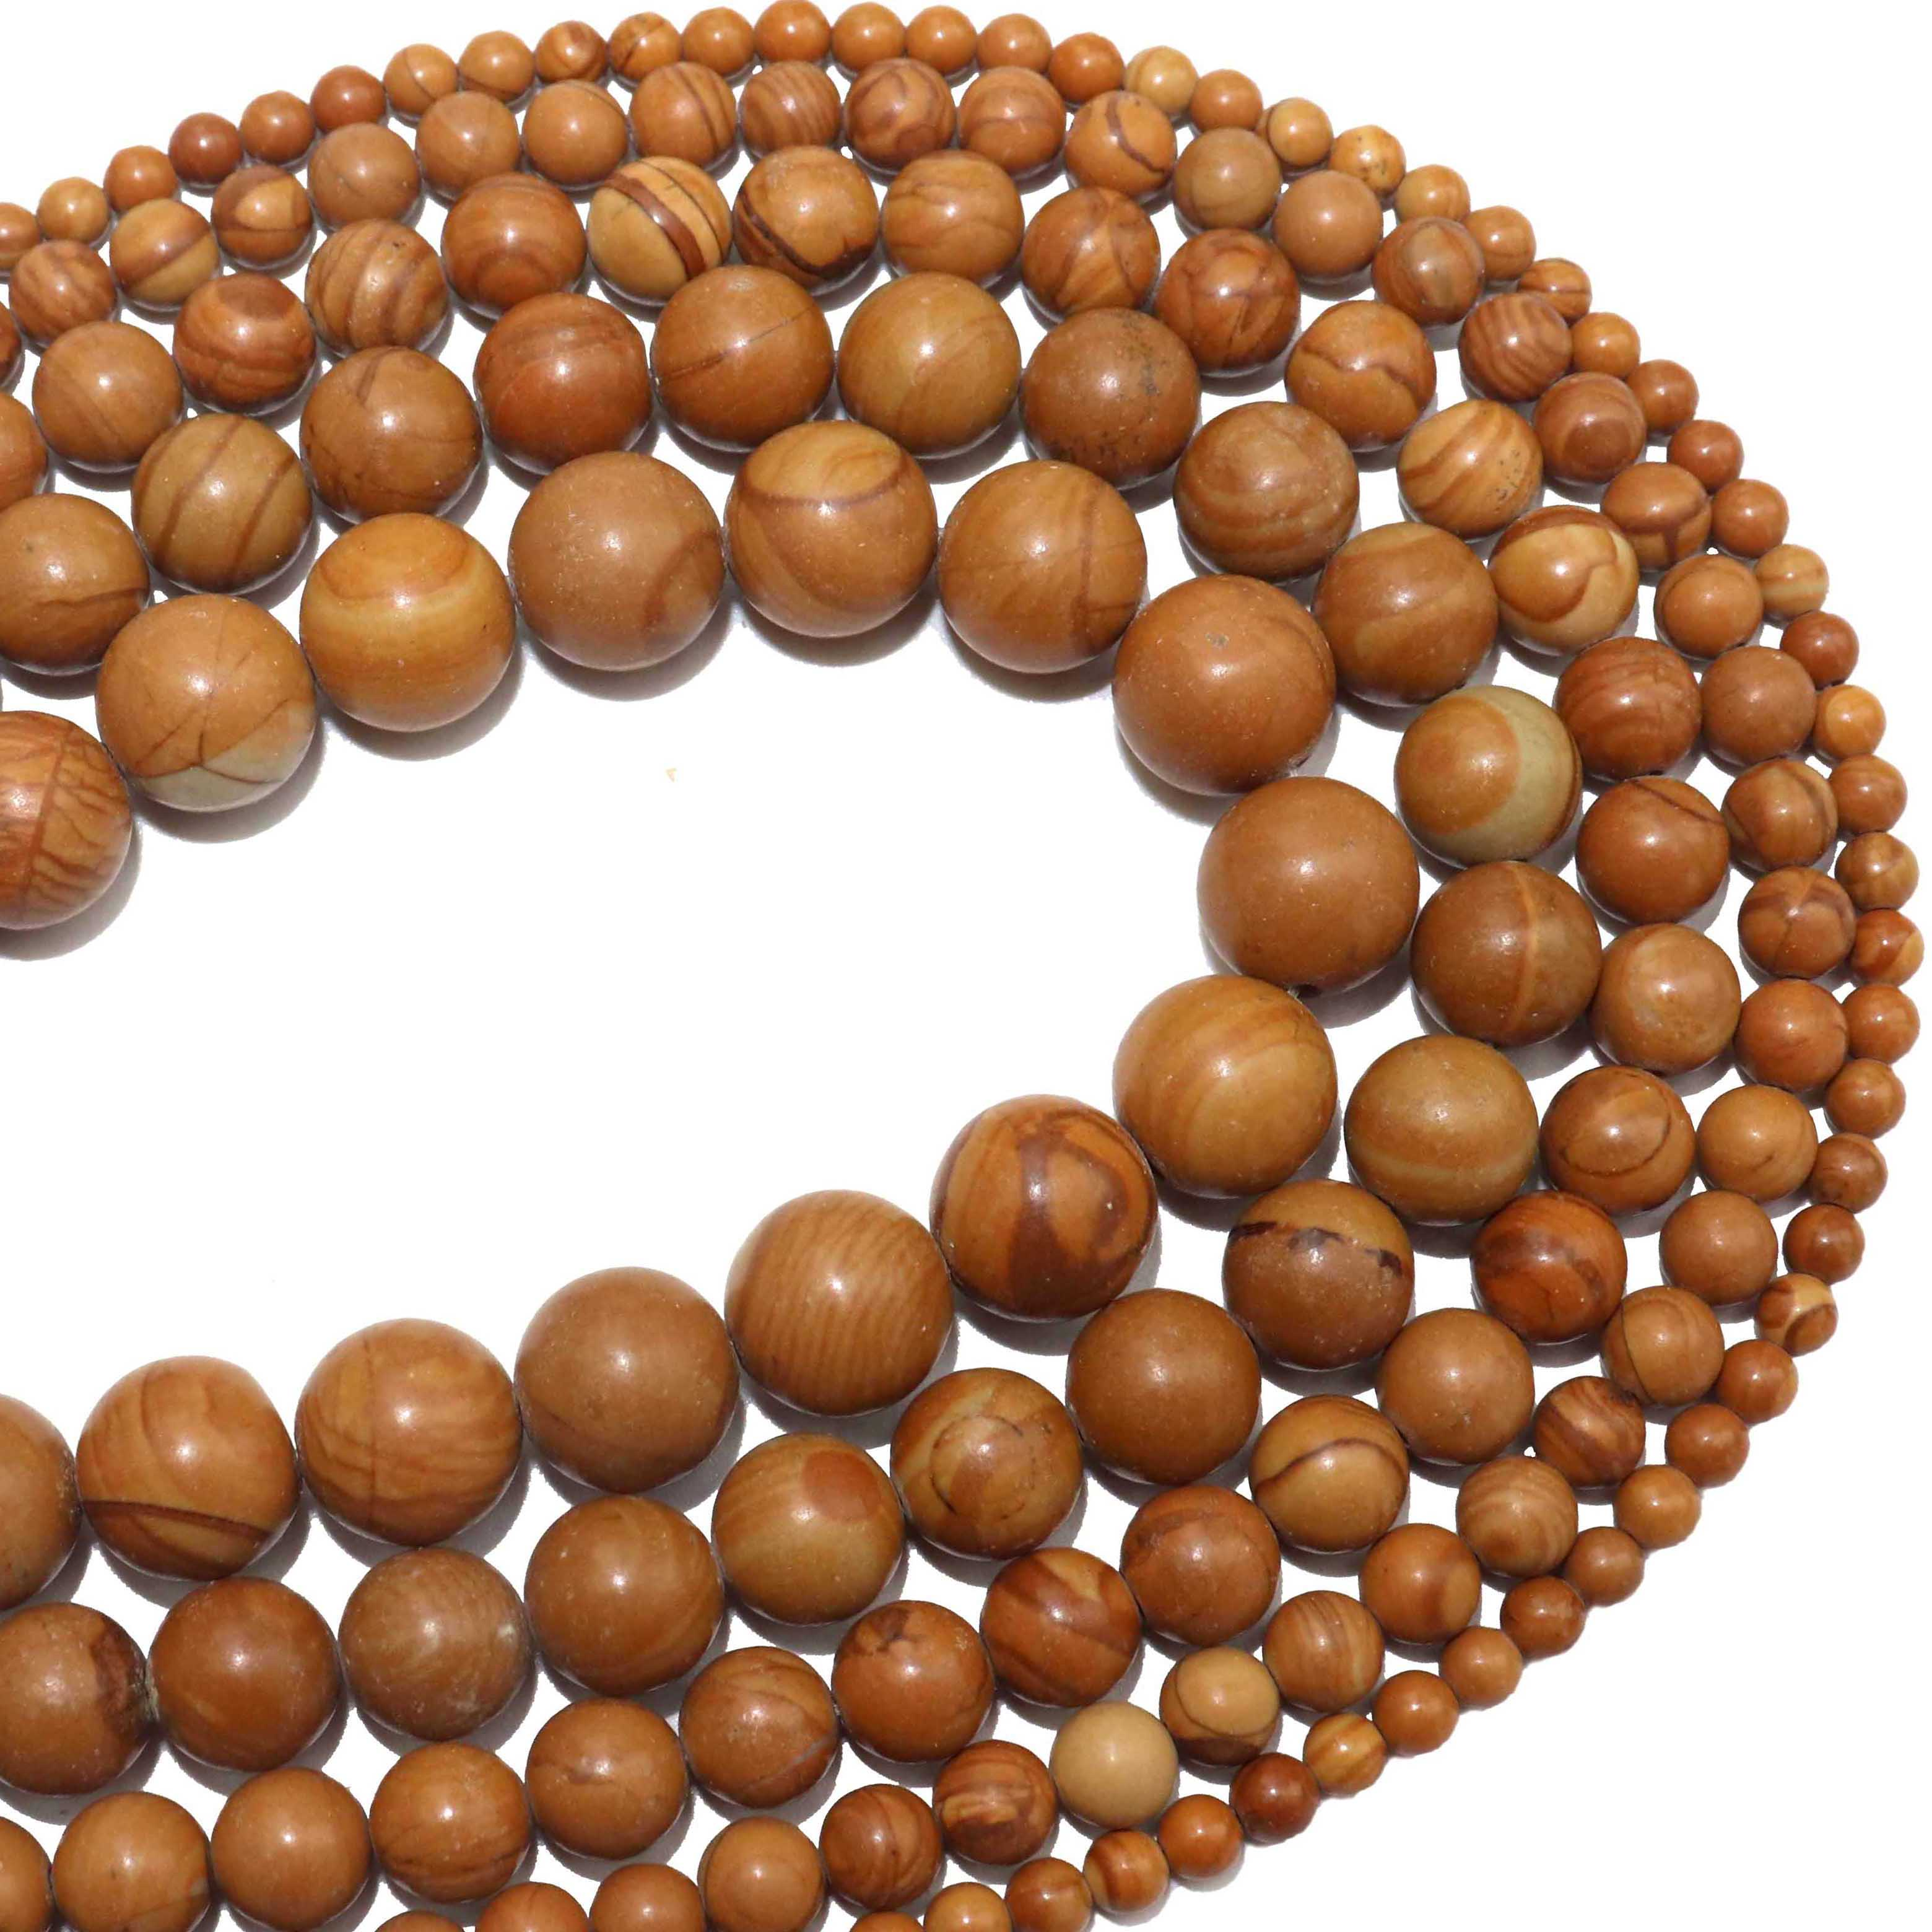 Free Ship 100pcs Natural Round Loose Wood Beads for Jewelry Making 6 8 10 14mm